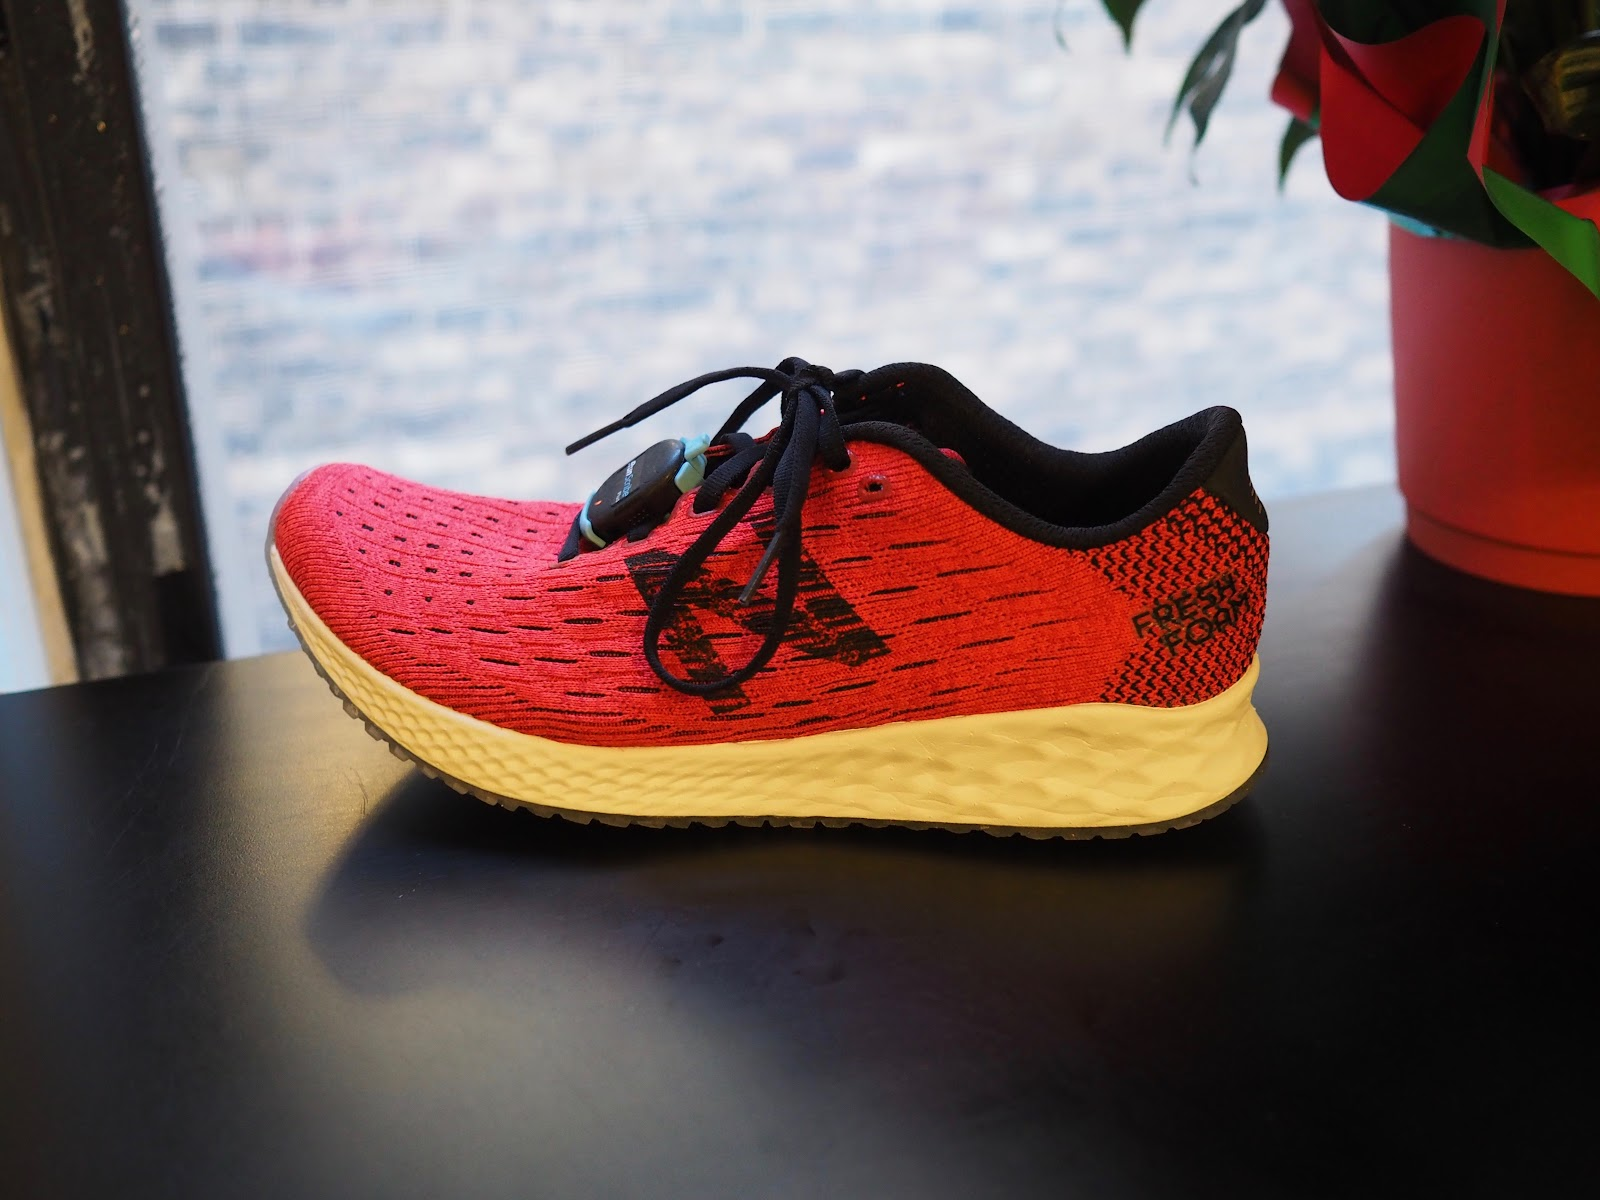 5ee7eb16b321 Derek  A very stretchy knitted upper was used for this shoe. There are  essentially no overlays over the mid- and fore-foot